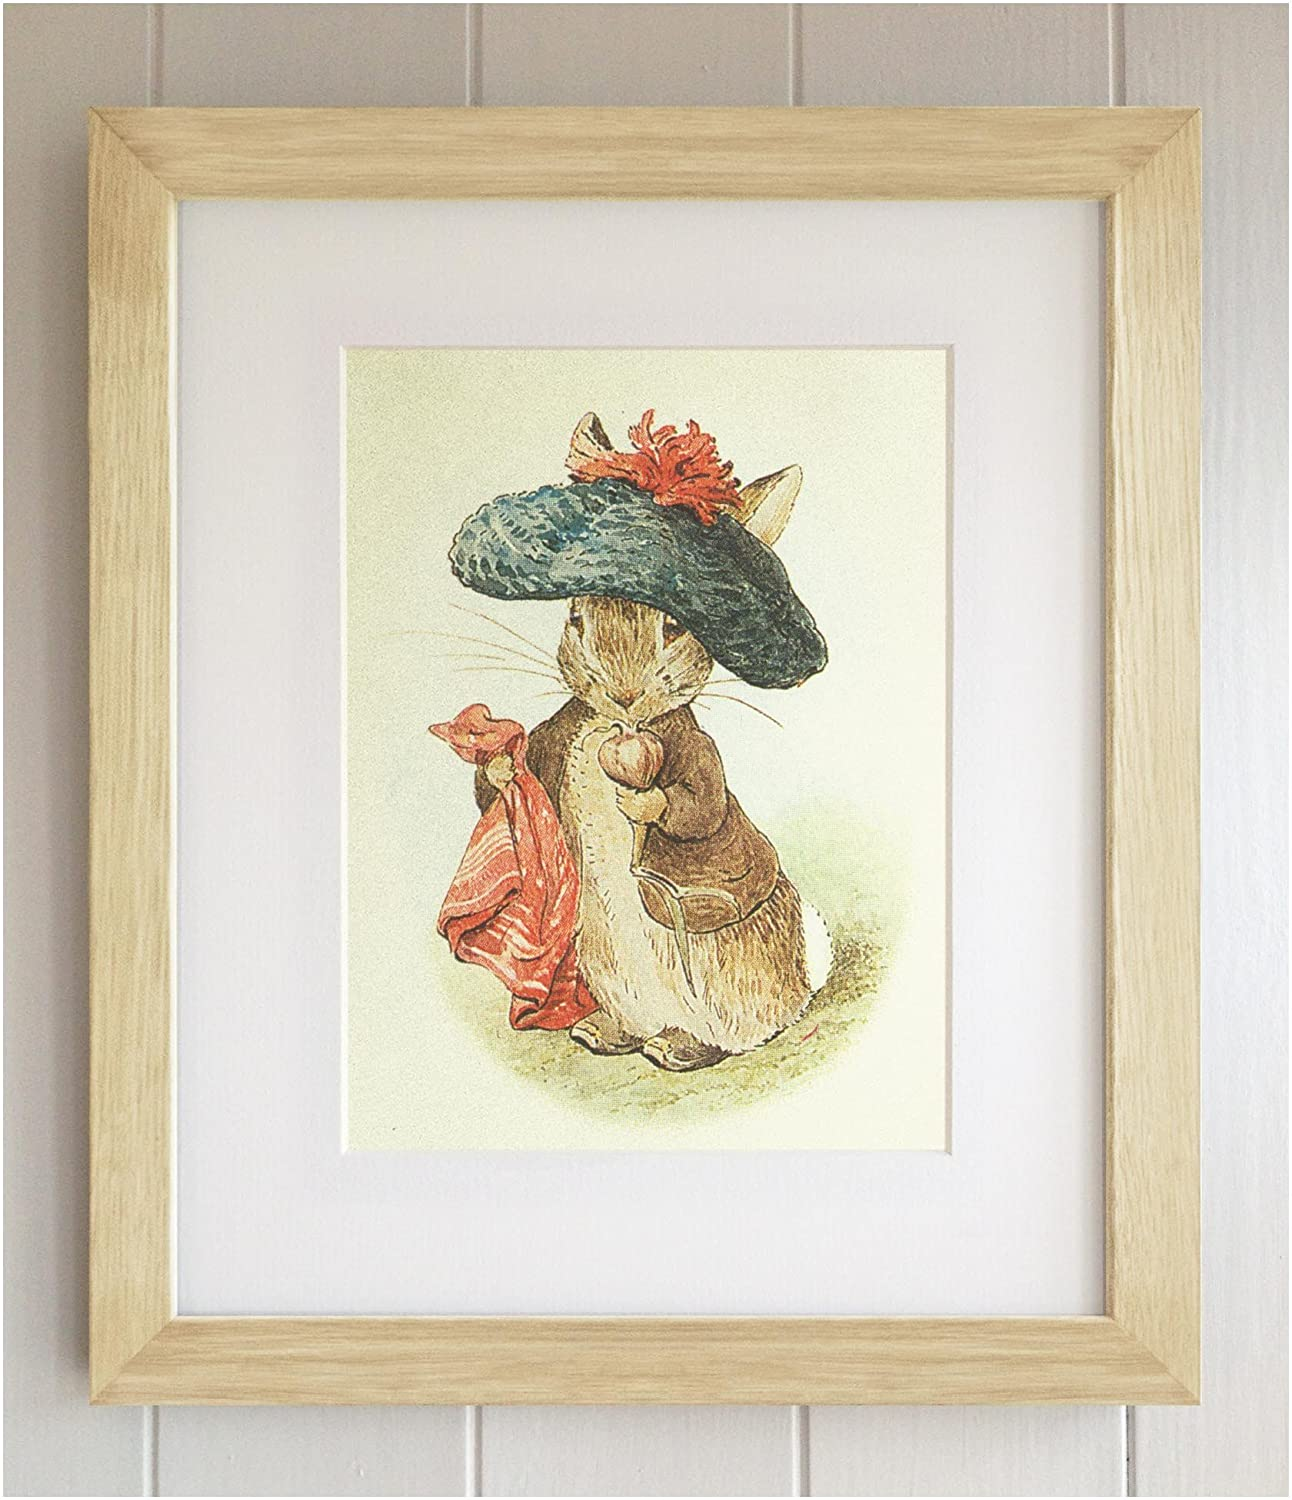 Benjamin Bunny New Baby//Birth 10x8 Solid Oak Frame Beatrix Potter FRAMED PRINT Christening Nursery Picture Gift Baby Shower Peter Rabbit and Friends